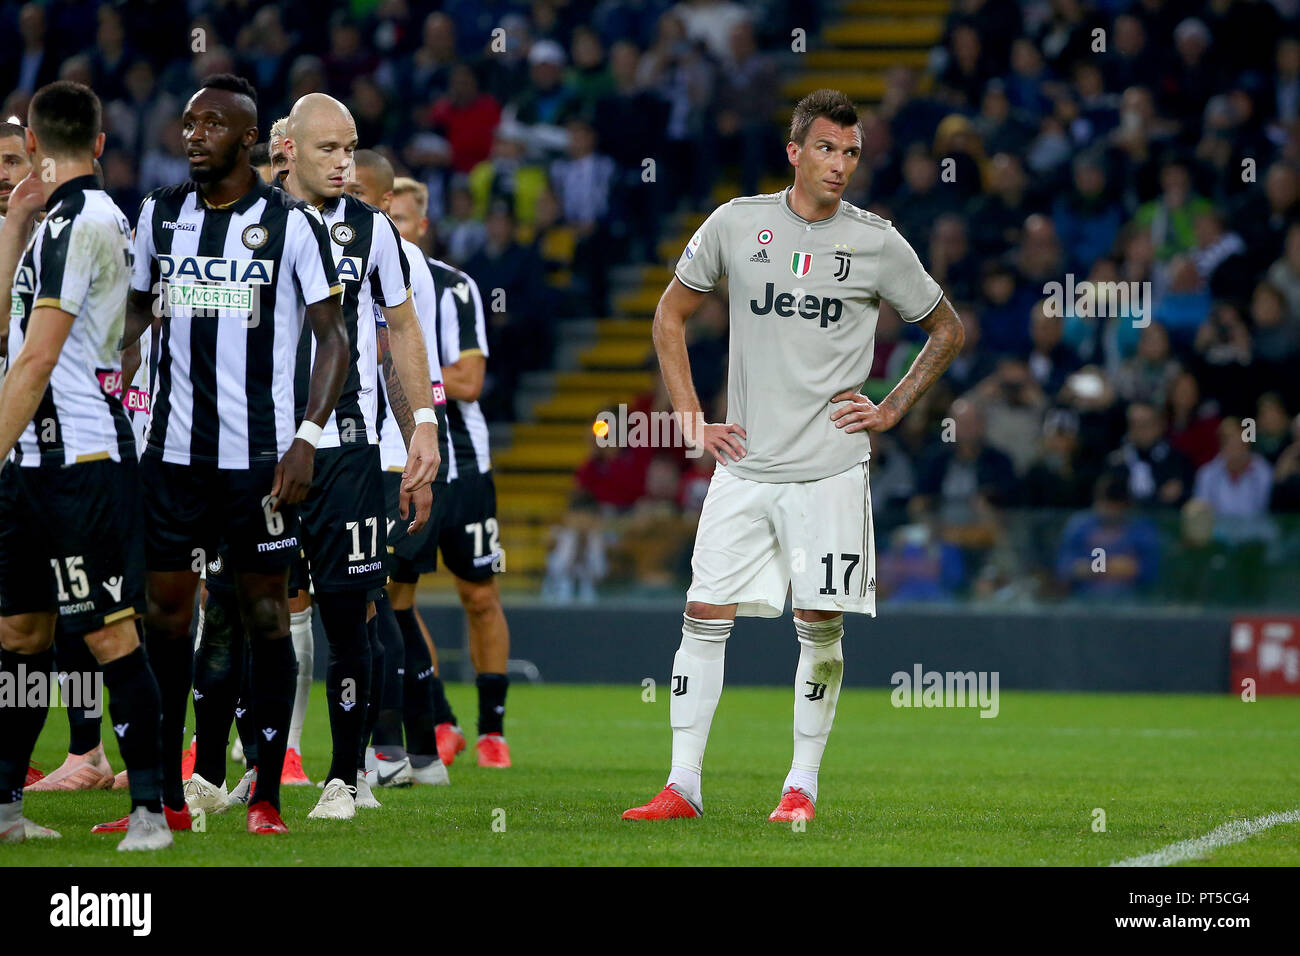 Turin Italy 06th Oct 2018 Football Serie A Tim Championship 2018 19 Udinese Vs Fc Juventus 0 2 In The Picture Mandzukic Credit Independent Photo Agency Alamy Live News Stock Photo Alamy